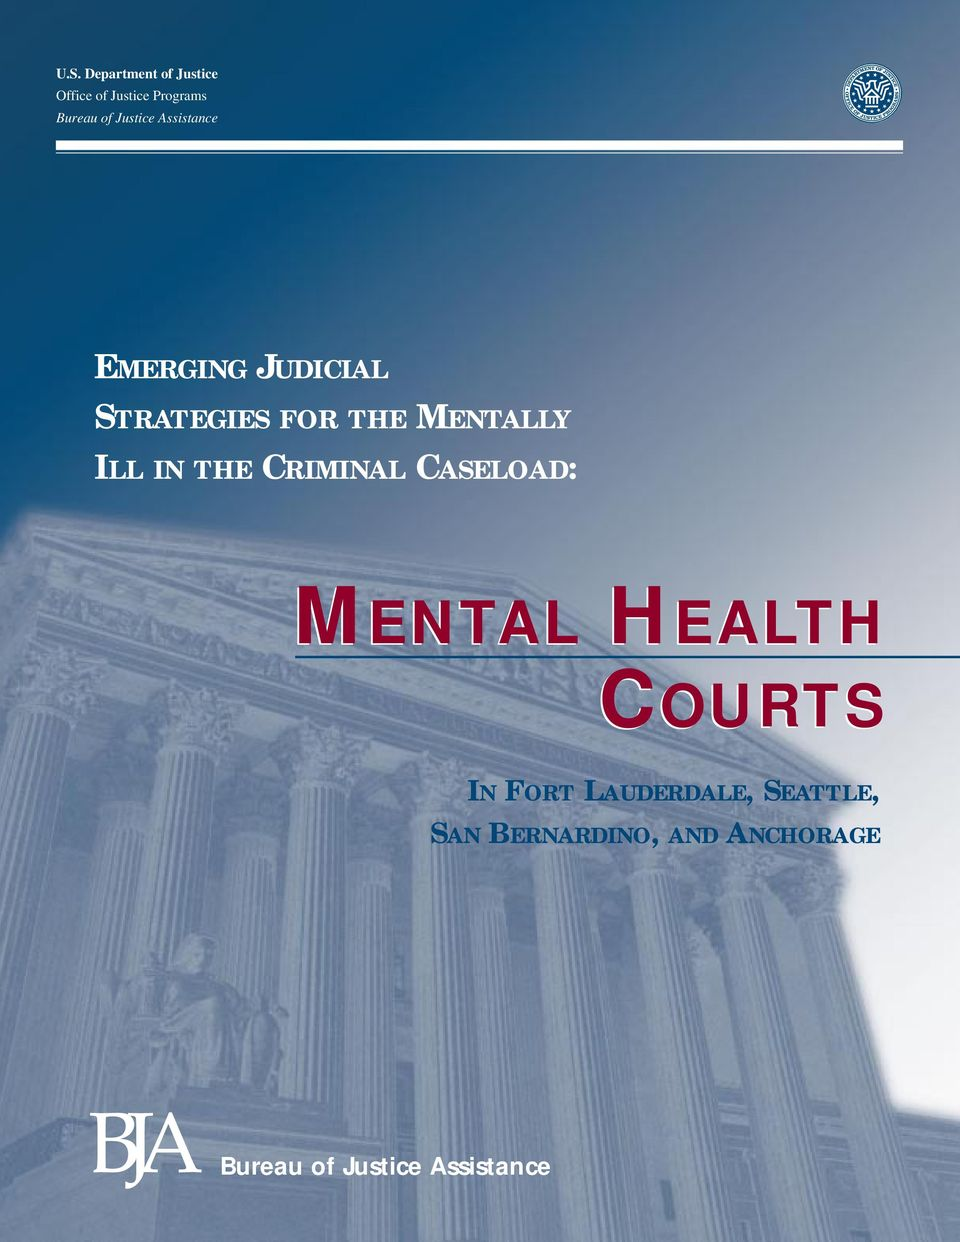 ILL IN THE CRIMINAL CASELOAD: MENTAL HEALTH COURTS IN FORT